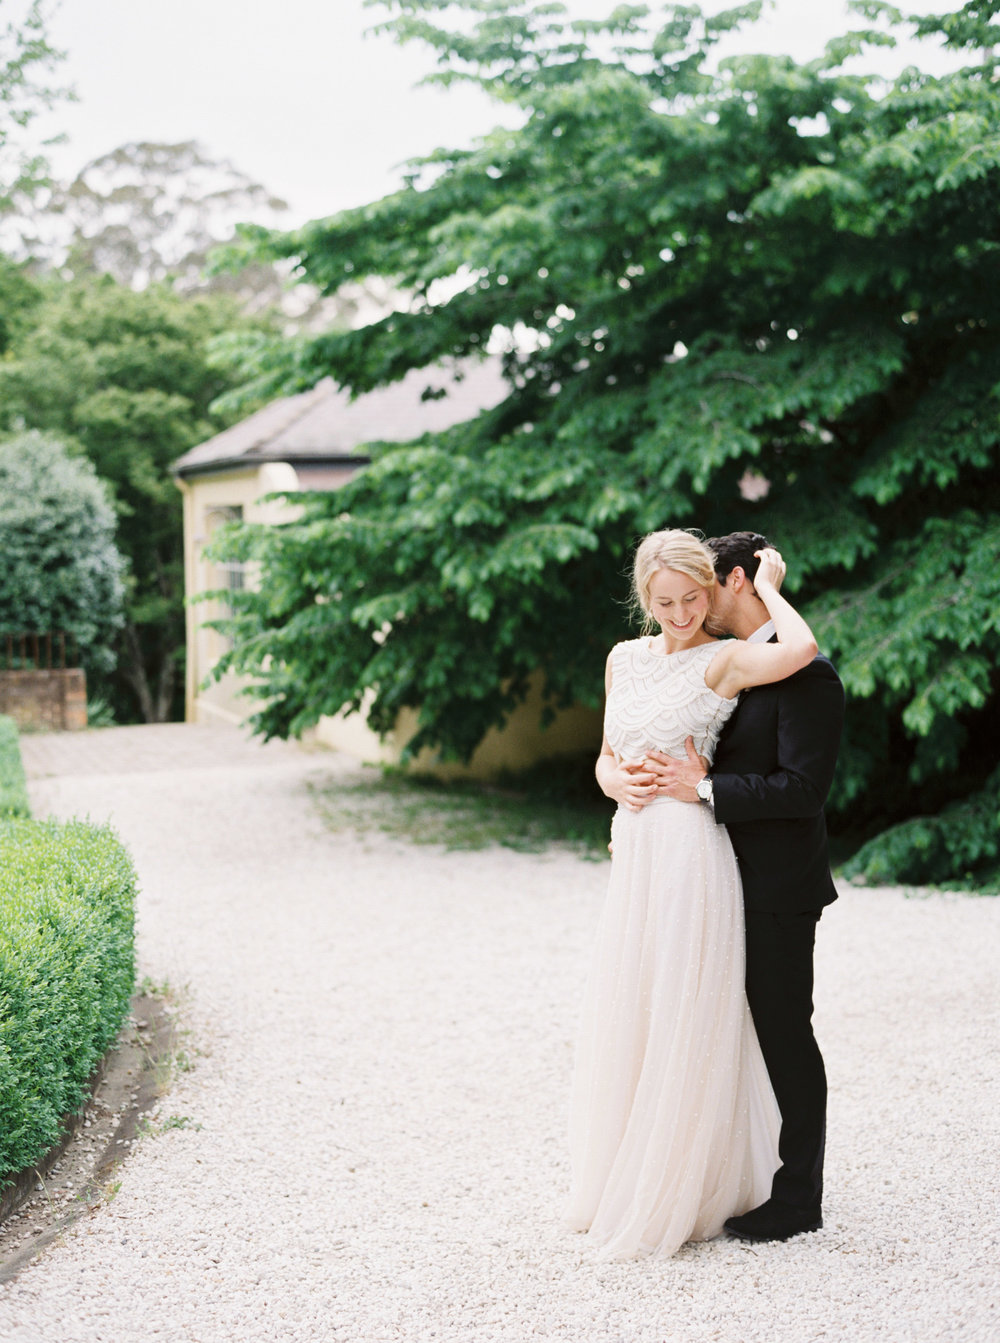 Timeless Southern Highland Wedding Elopement in Bowral NSW Fine Art Film Photographer Sheri McMahon-37.jpg